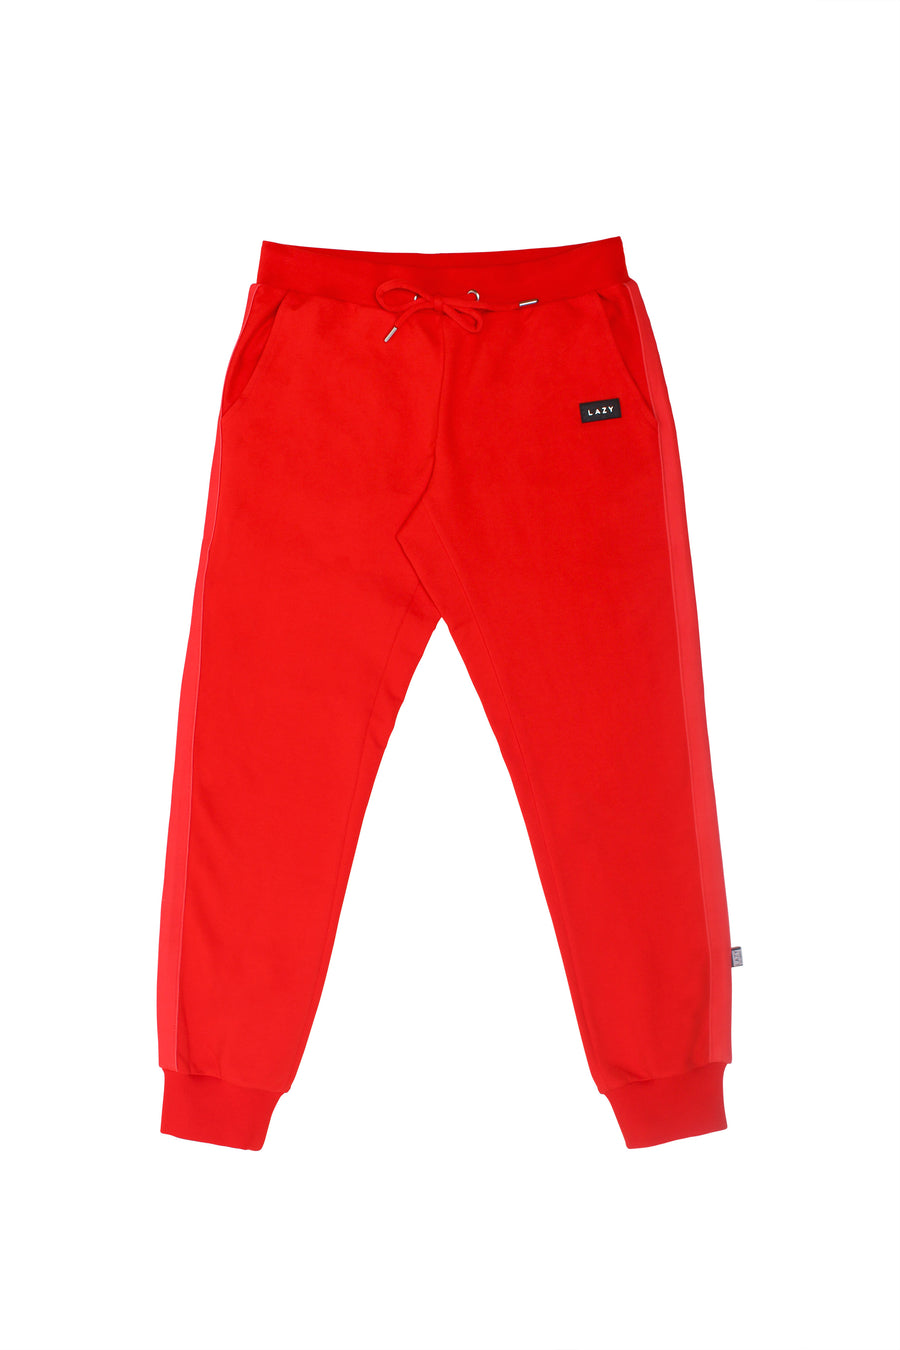 LAZY 1.0 Sweat Pants Red-Bottoms-Christina Dienst